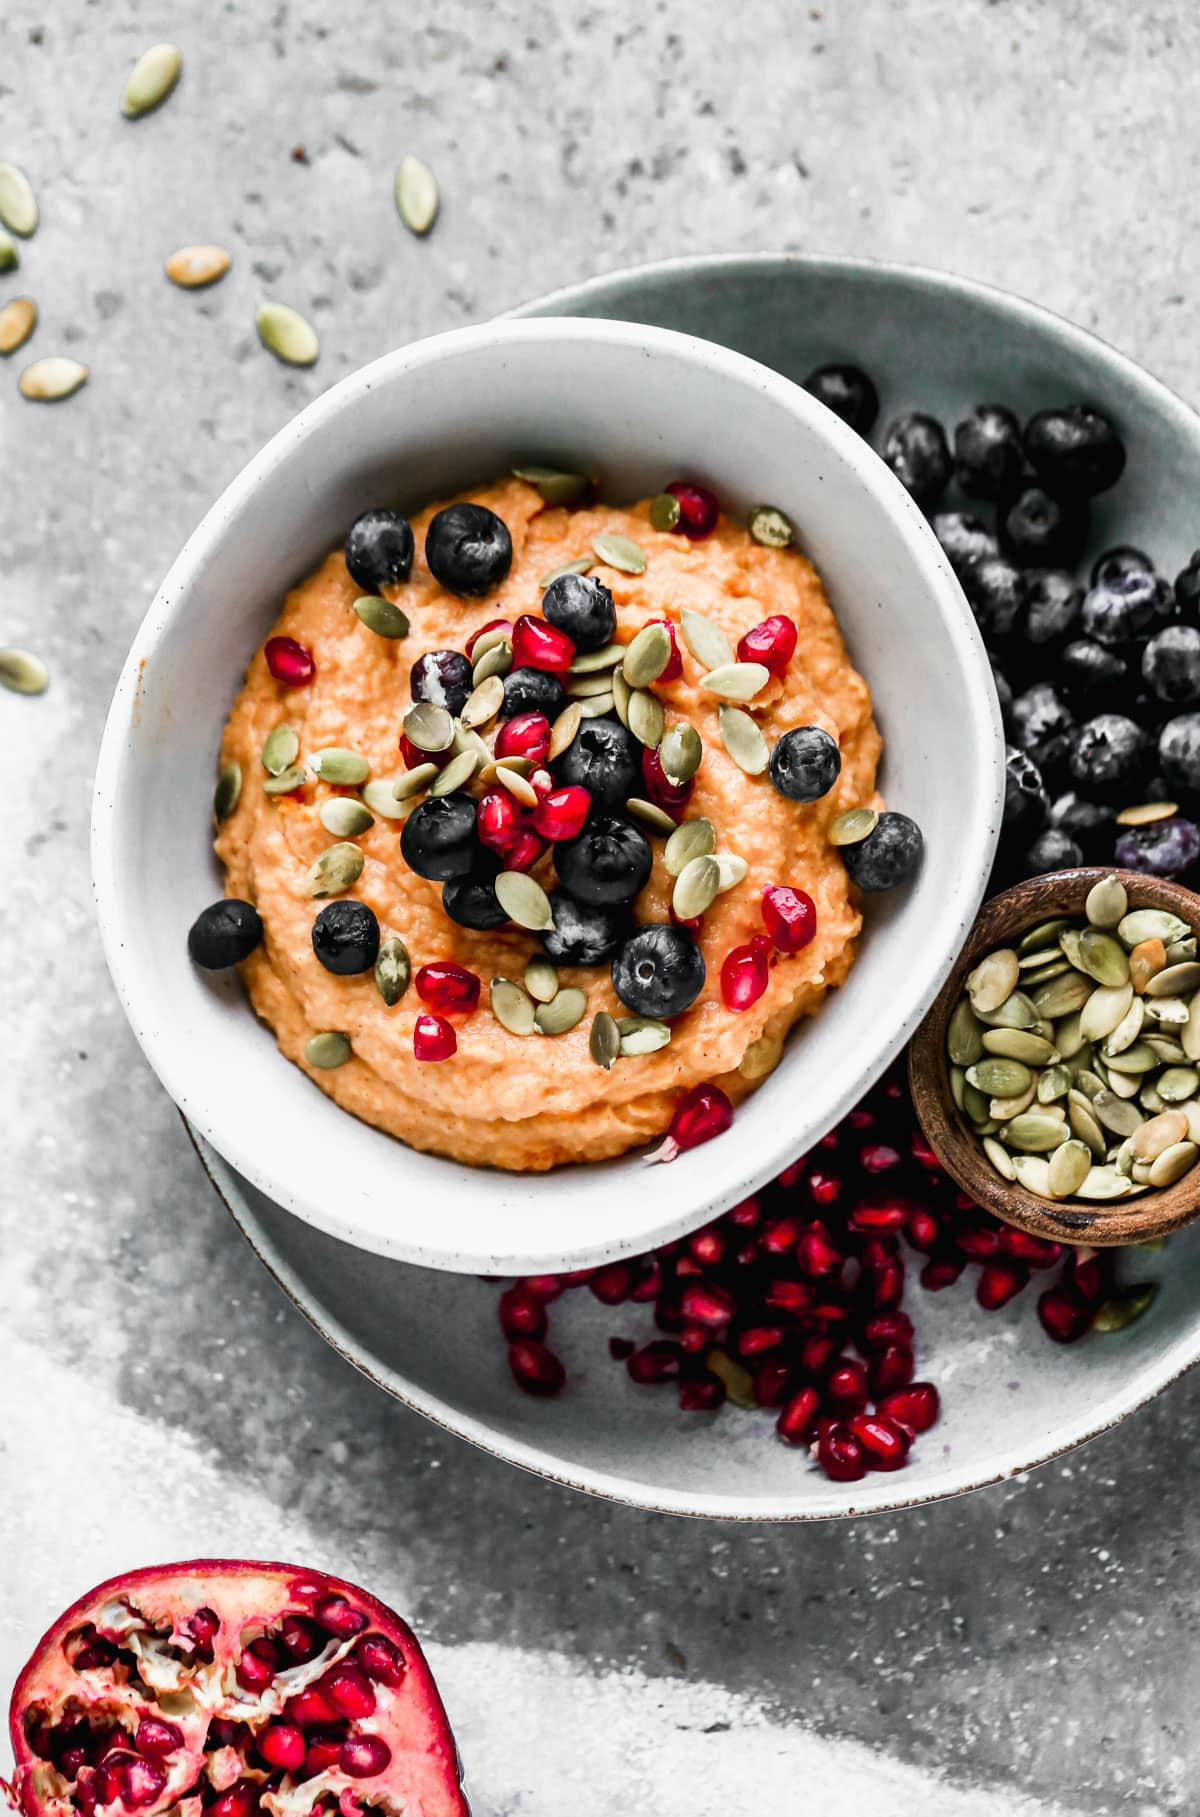 A Whole30 breakfast bowl topped with blueberries